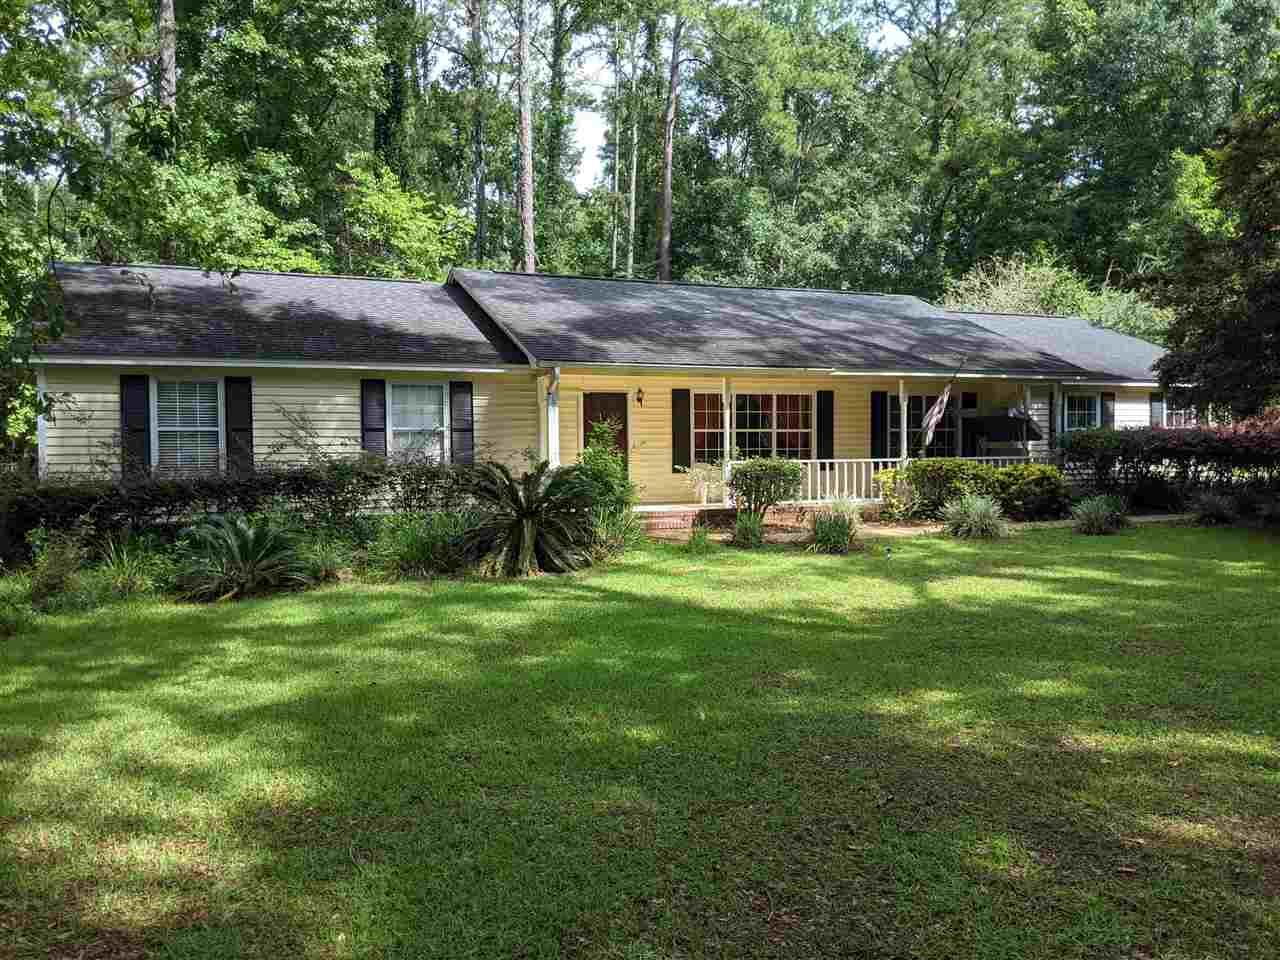 Photo of 3400 Blue Quill Lane, TALLAHASSEE, FL 32312 (MLS # 335030)